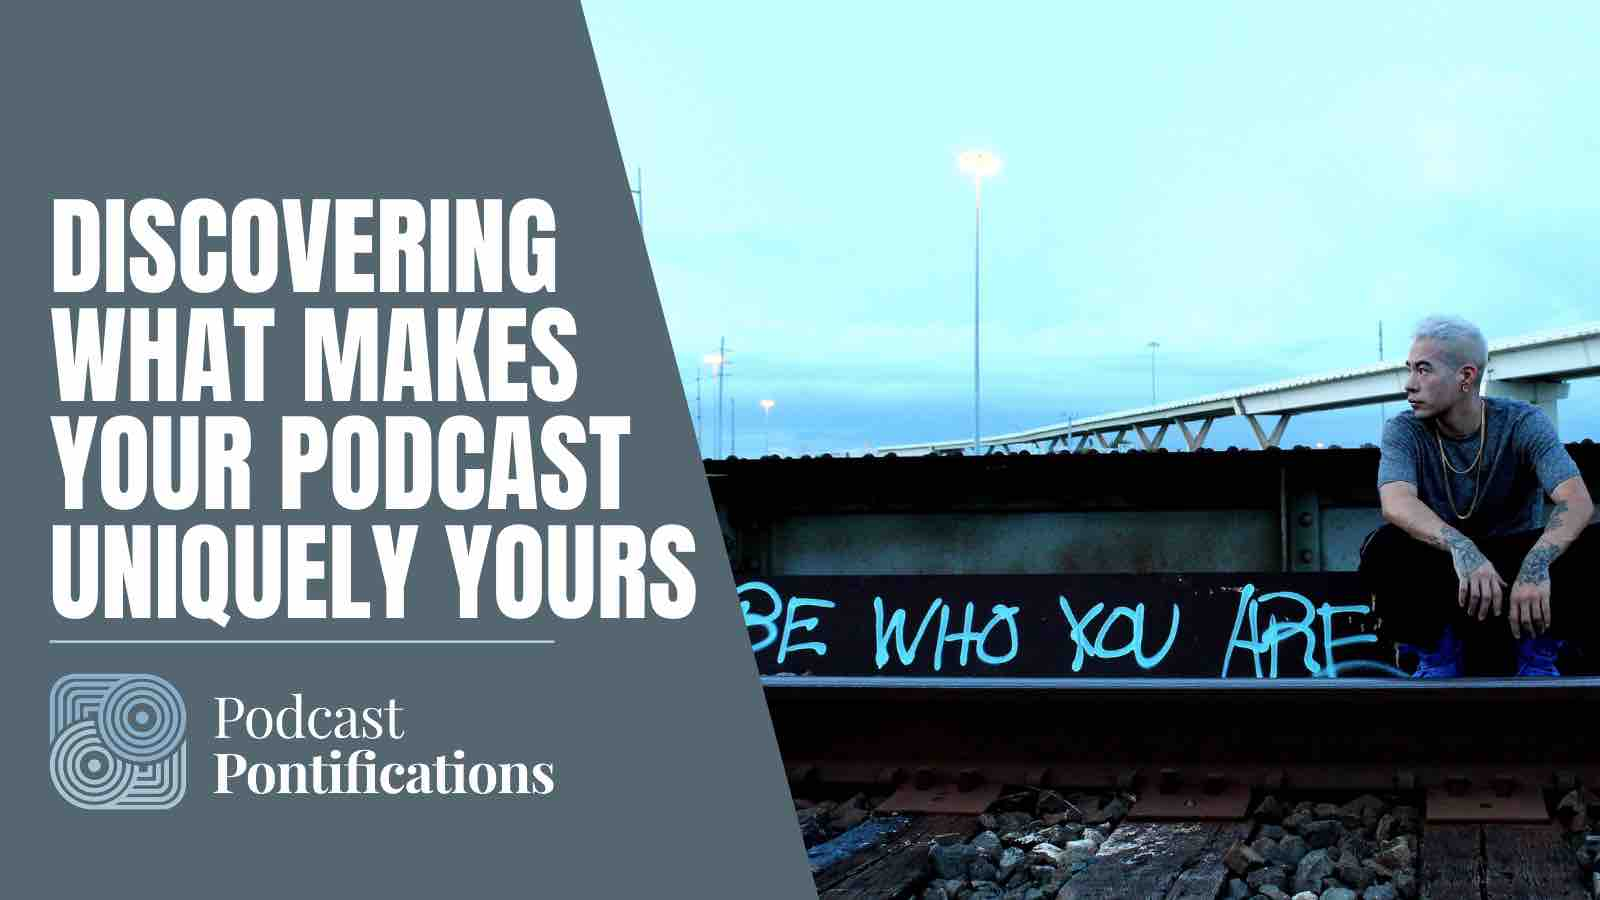 Discovering What Makes Your Podcast Uniquely Yours